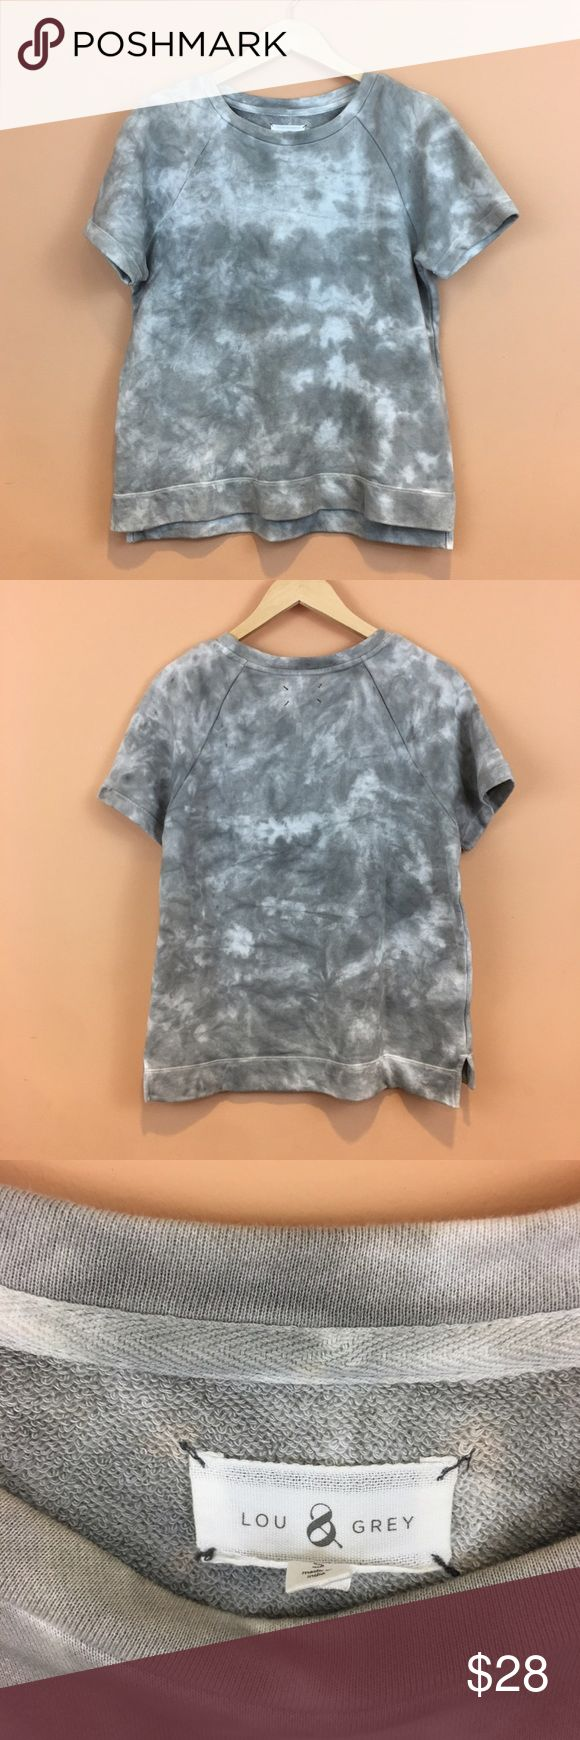 """LOFT Lou & Grey Washed Tie Dye Short Sleeve top LOFT Lou & Grey Washed Tie Dye Short Sleeve top  size small  pit tp pit 20""""  front length 24""""  back length 26""""  100% cotton Lou & Grey Tops"""